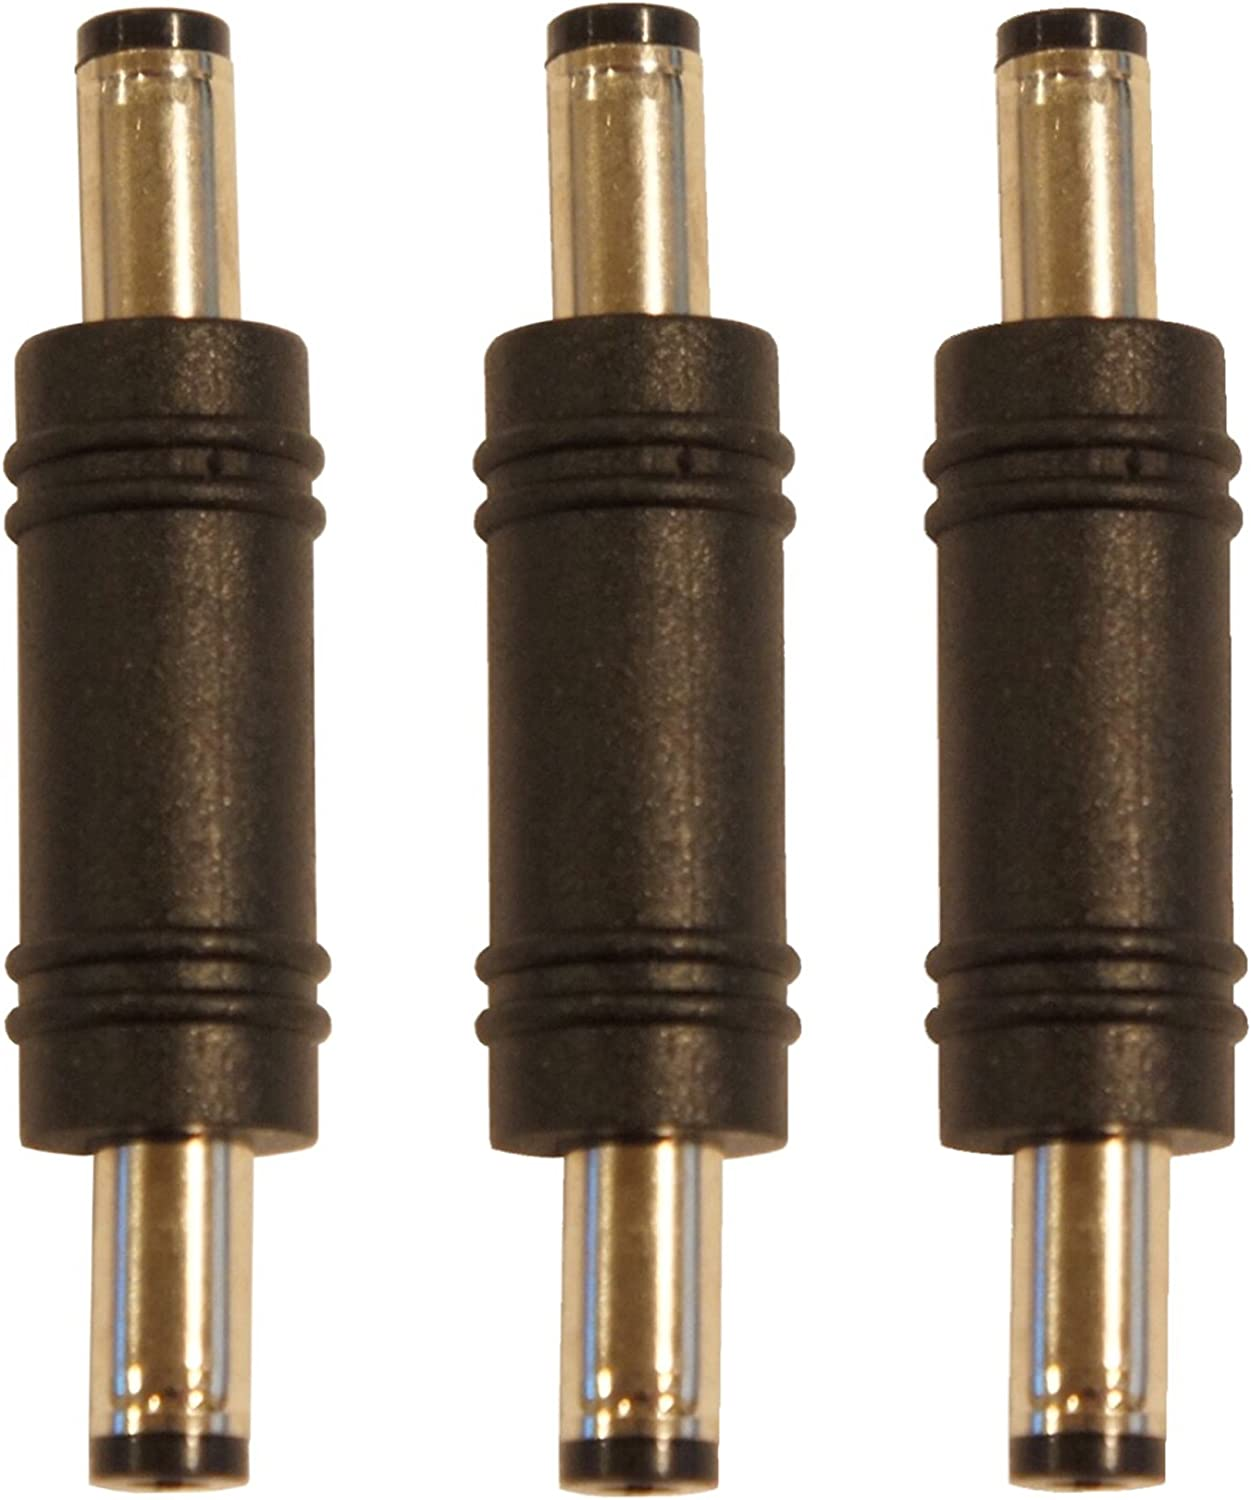 3 Pack of 2.1mm X 5.5mm DC Barrel Power Cable Male to Male Coupler Gender Adapter